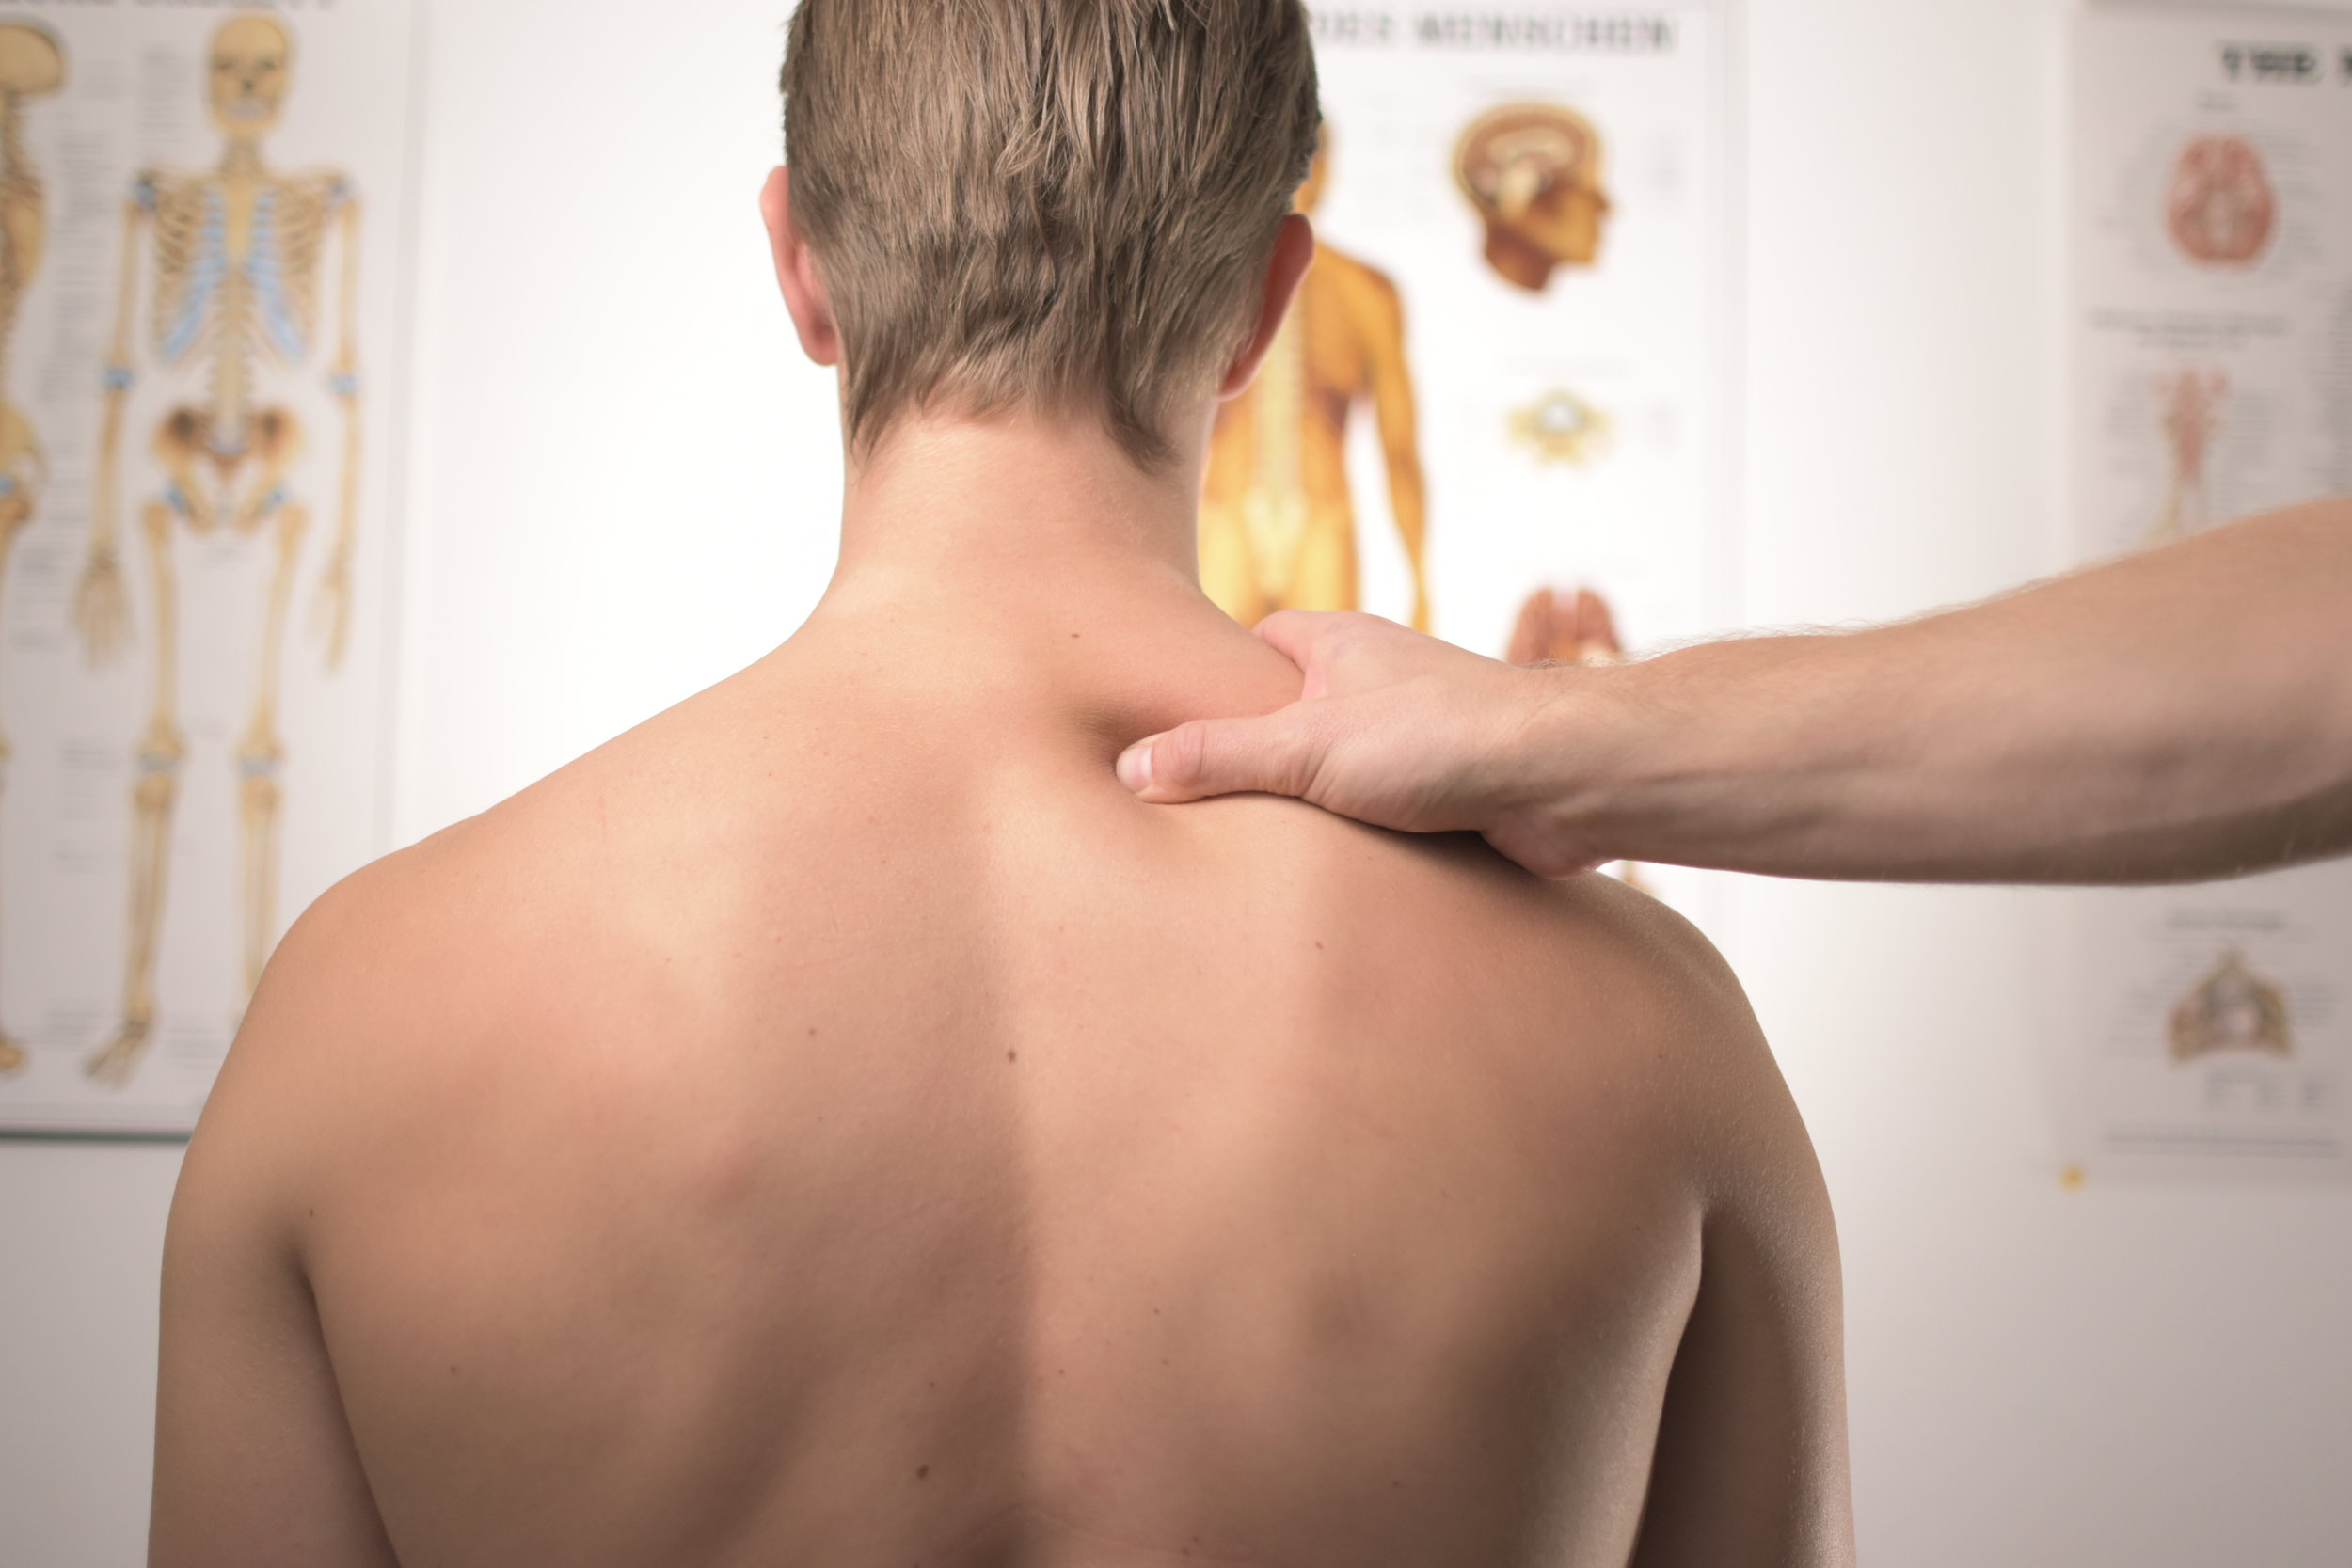 Neck and Upper Back Pain - 3 at-home exercises for prevention